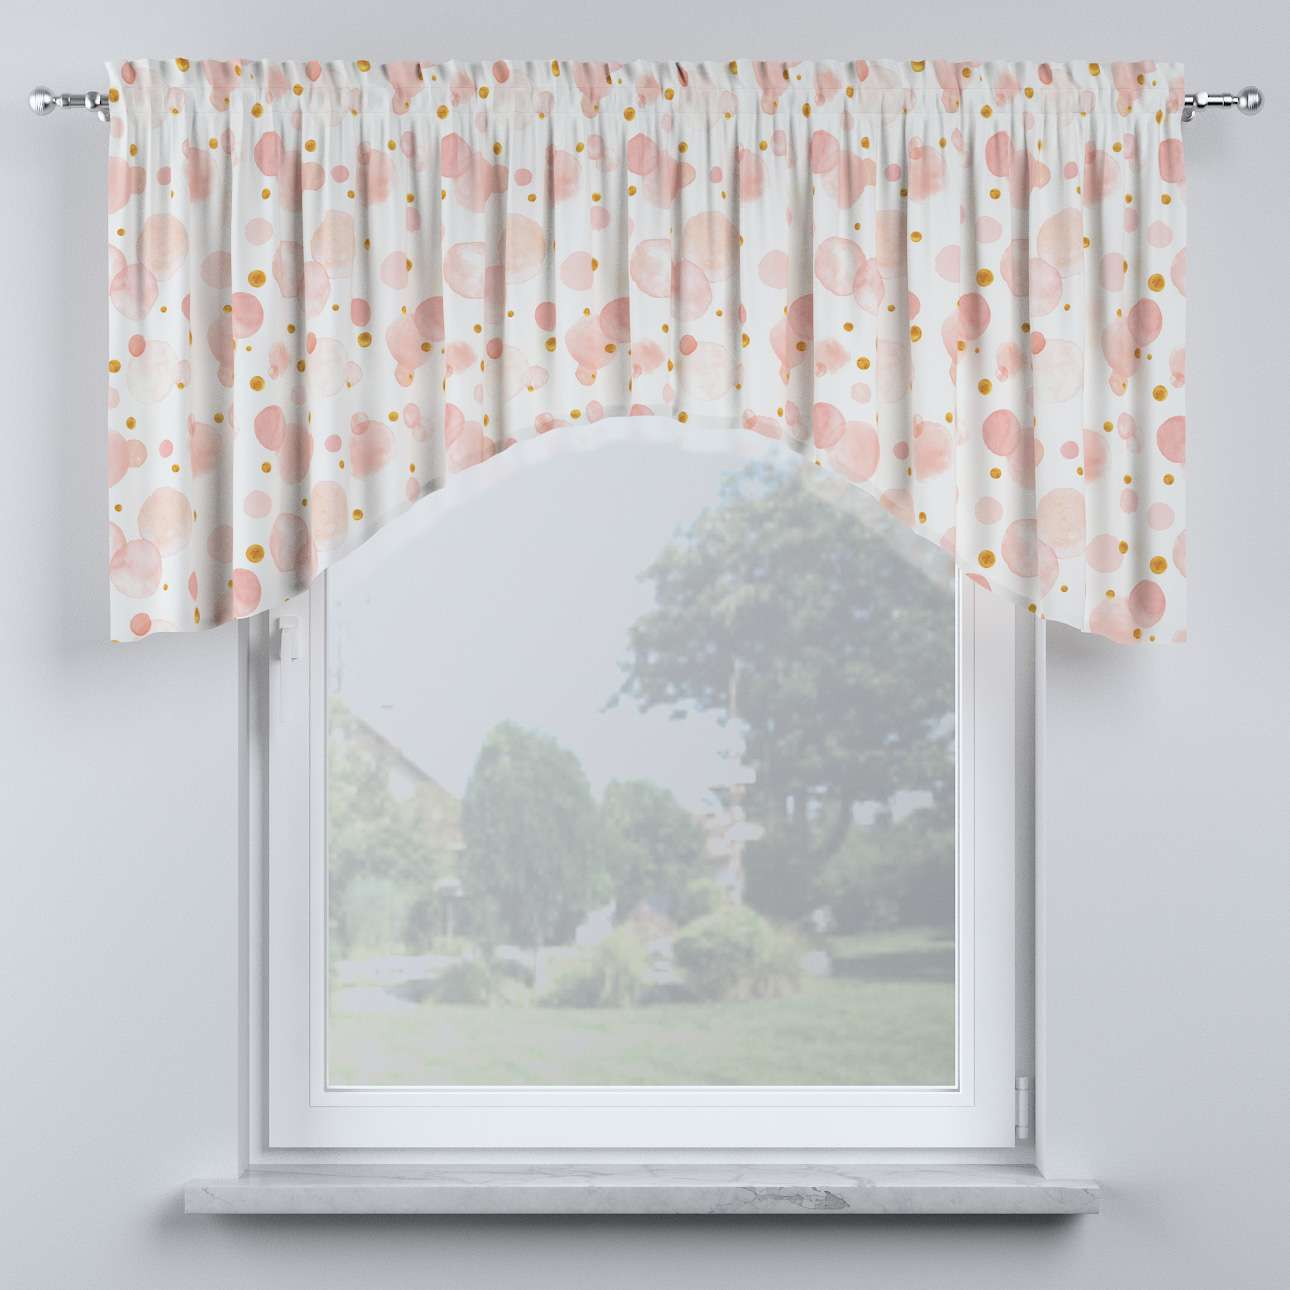 Bow lambrequin in collection Magic Collection, fabric: 500-13